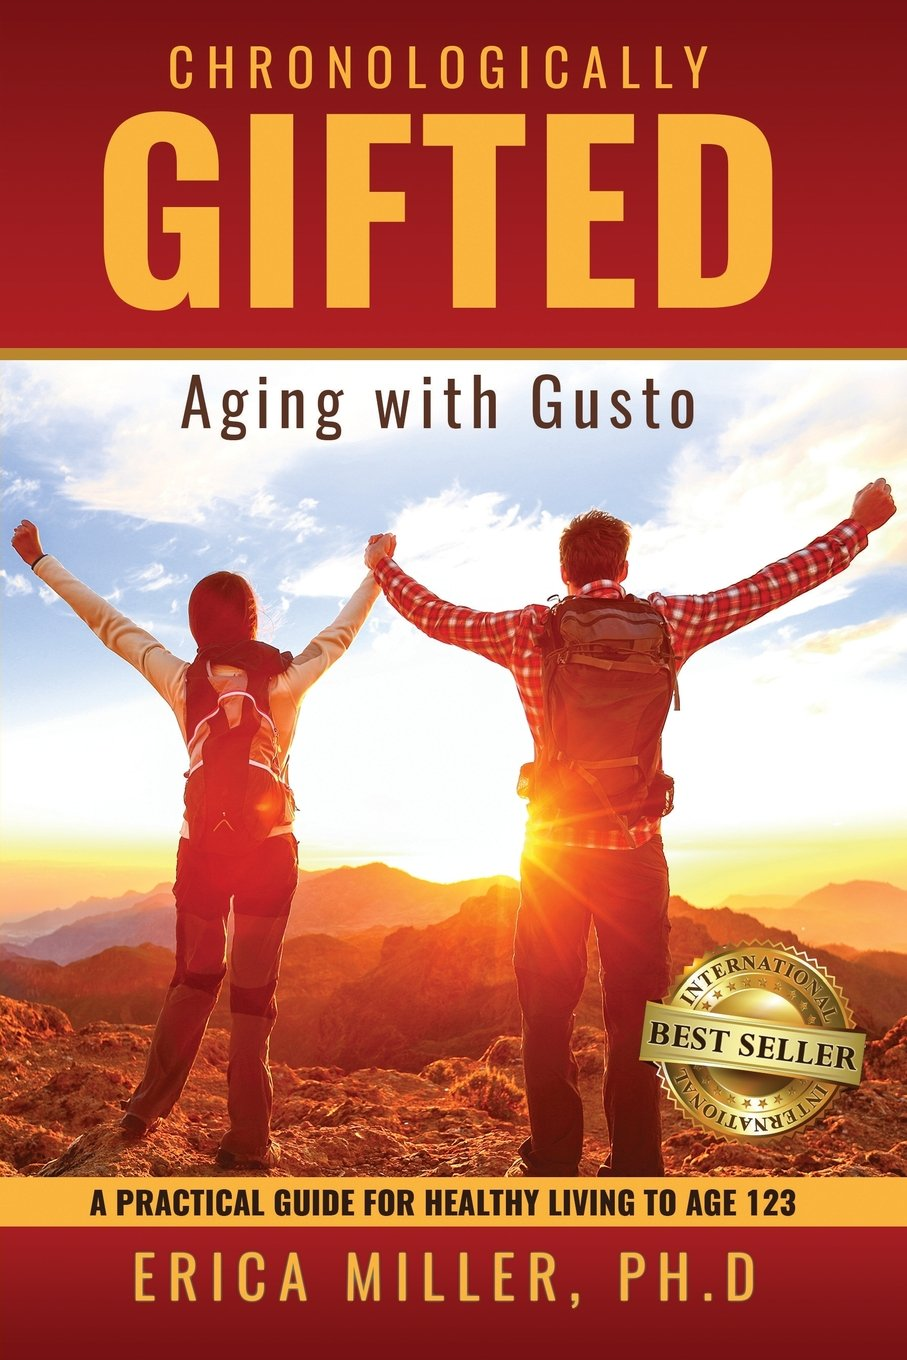 Chronologically Gifted : Aging with Gusto: A Practical Guide for Healthy Living to Age 123